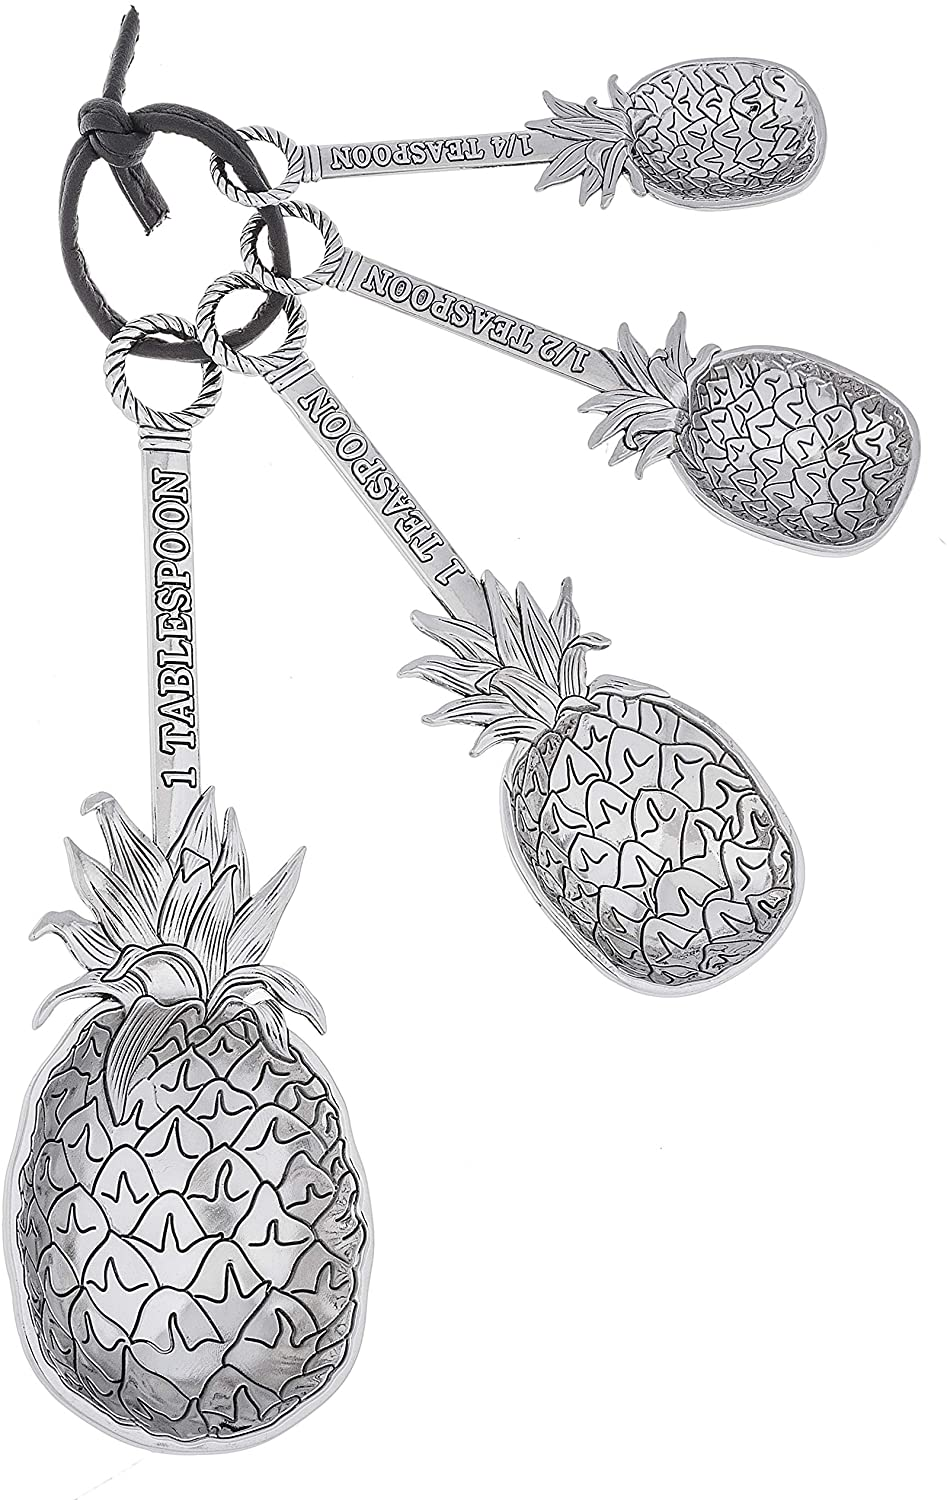 pineapple-decor-gifts-measuring-spoons